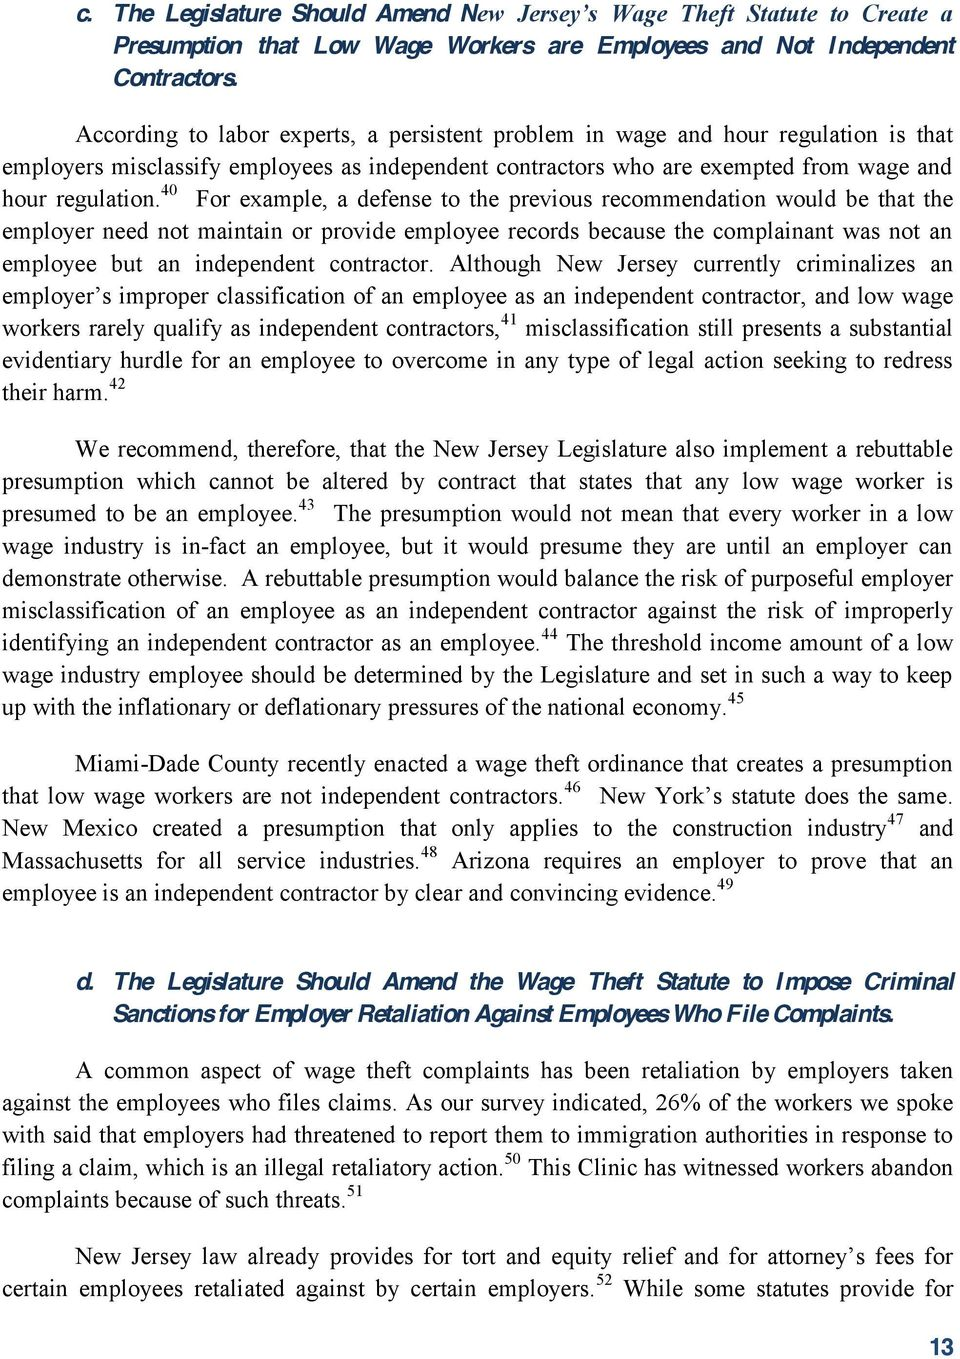 40 For example, a defense to the previous recommendation would be that the employer need not maintain or provide employee records because the complainant was not an employee but an independent